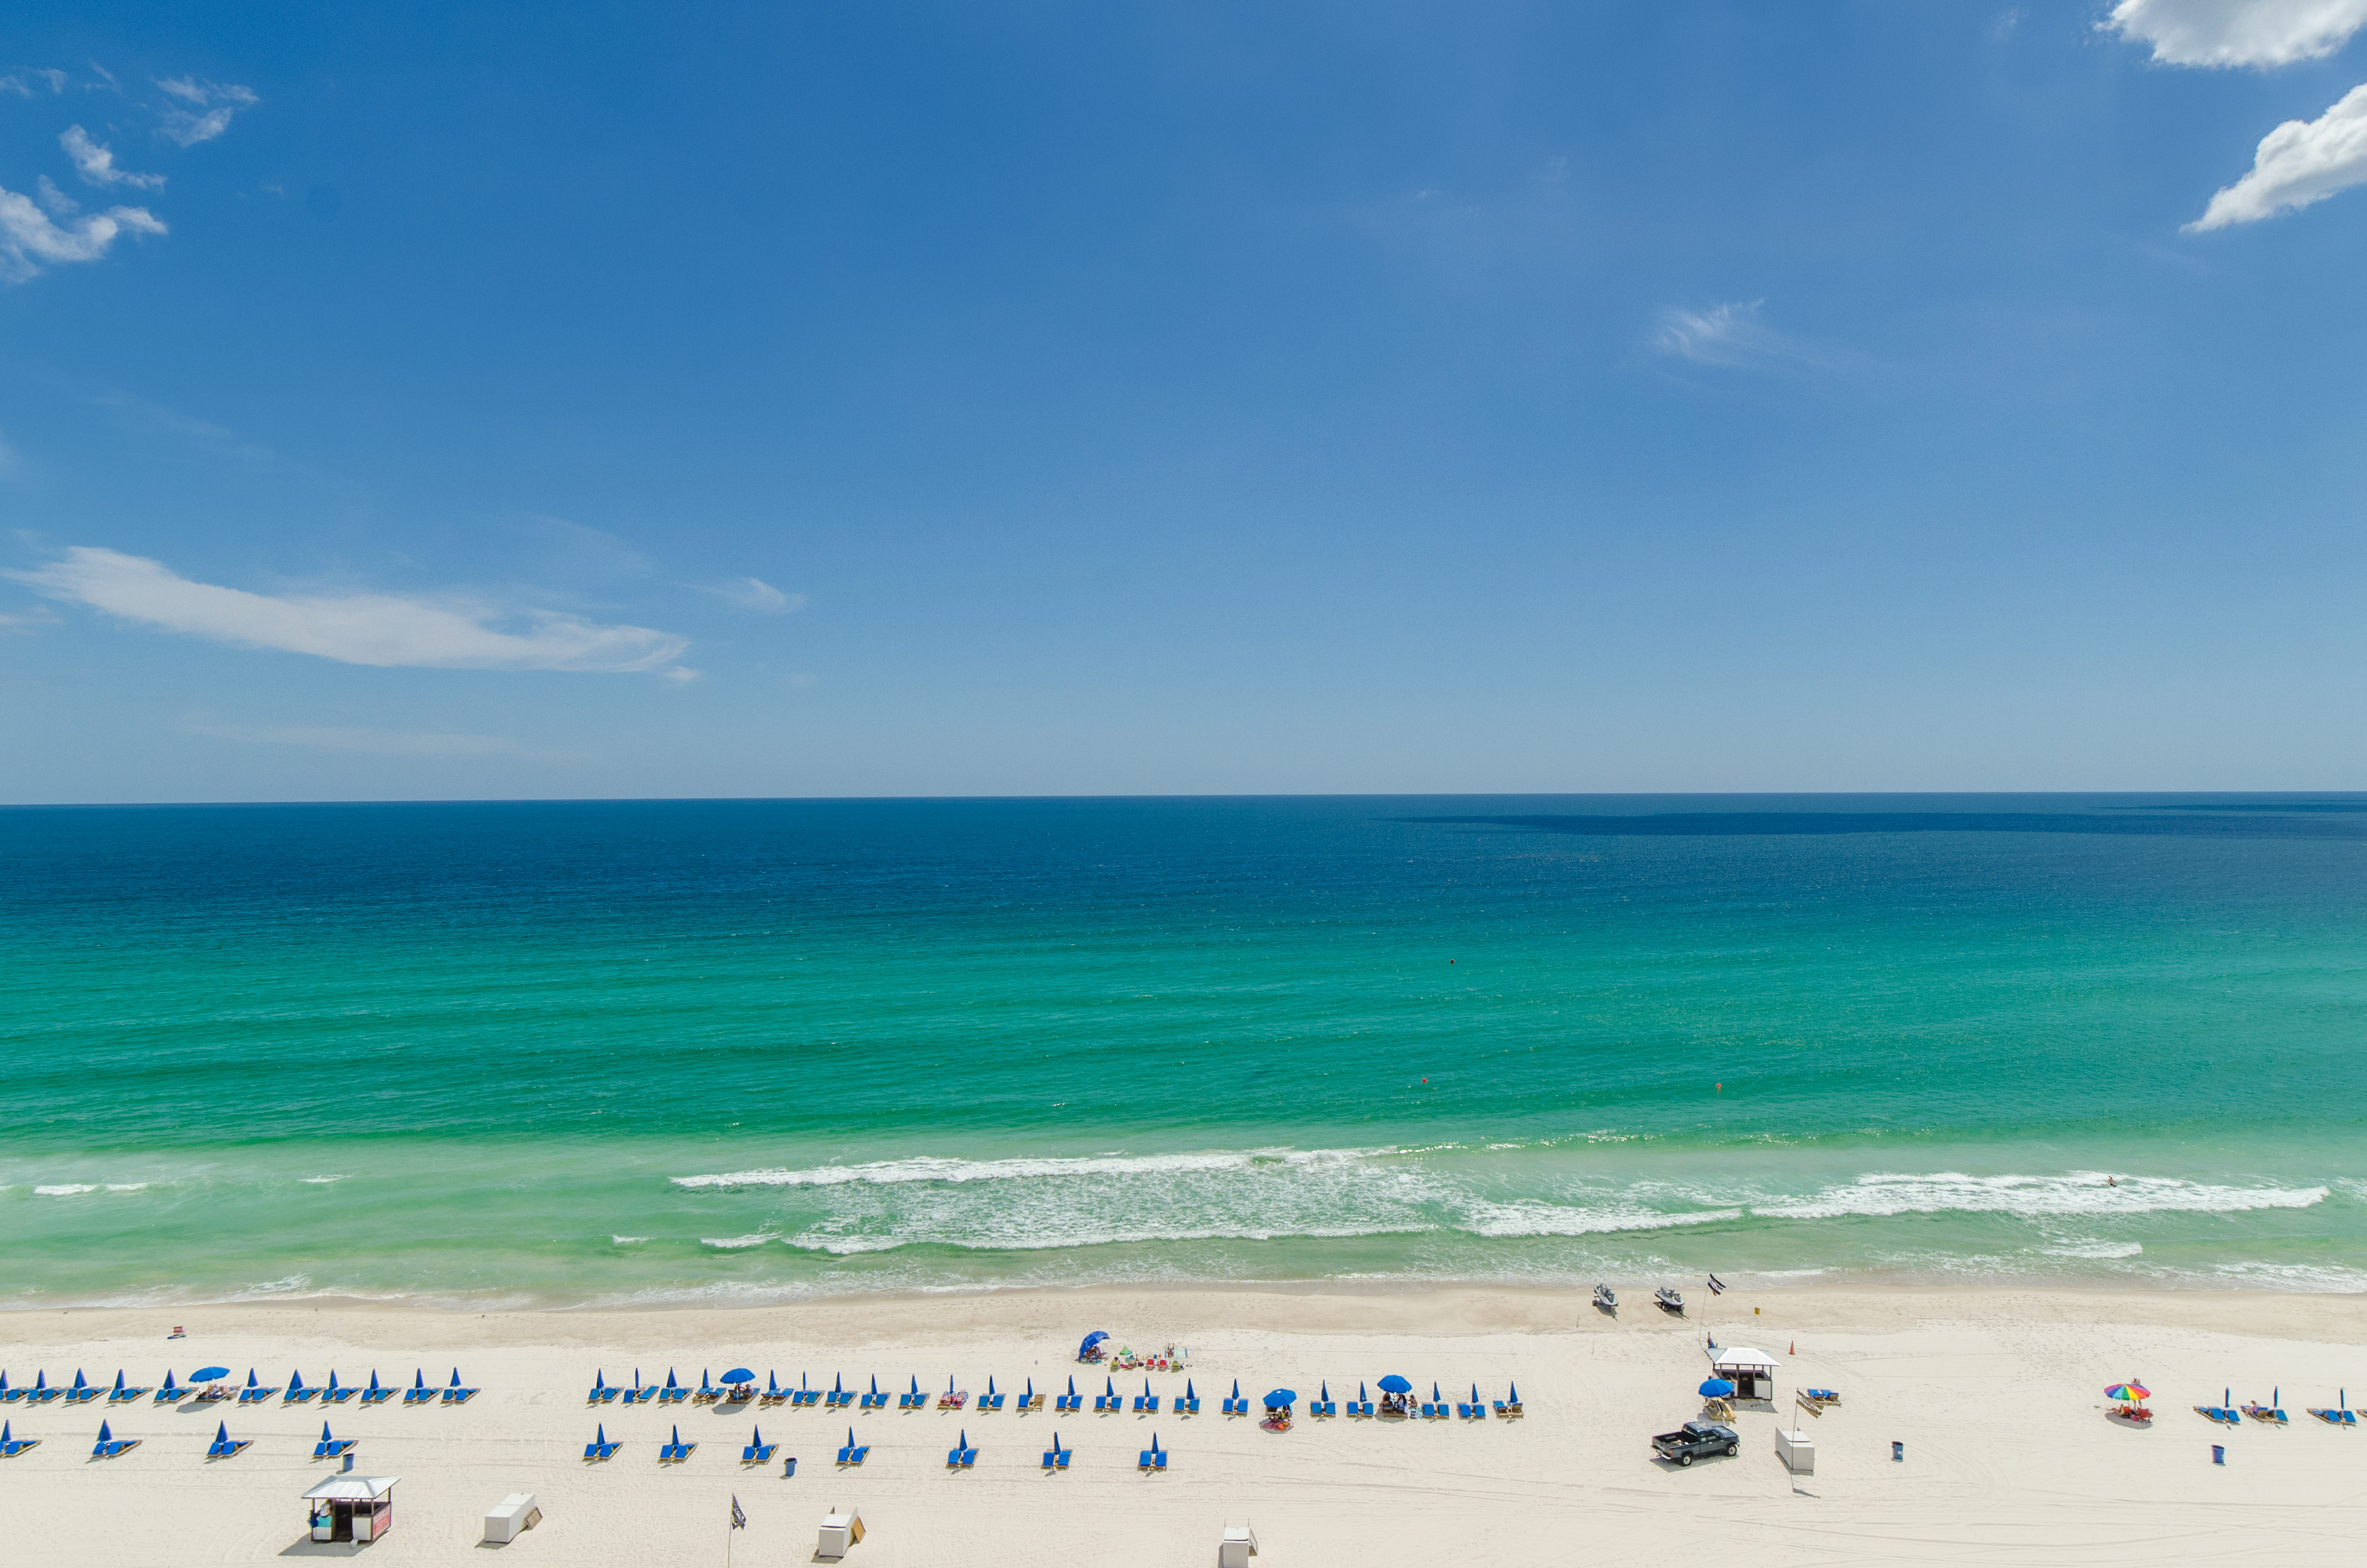 Beach Days are the main attraction in Panama City Beach, Florida